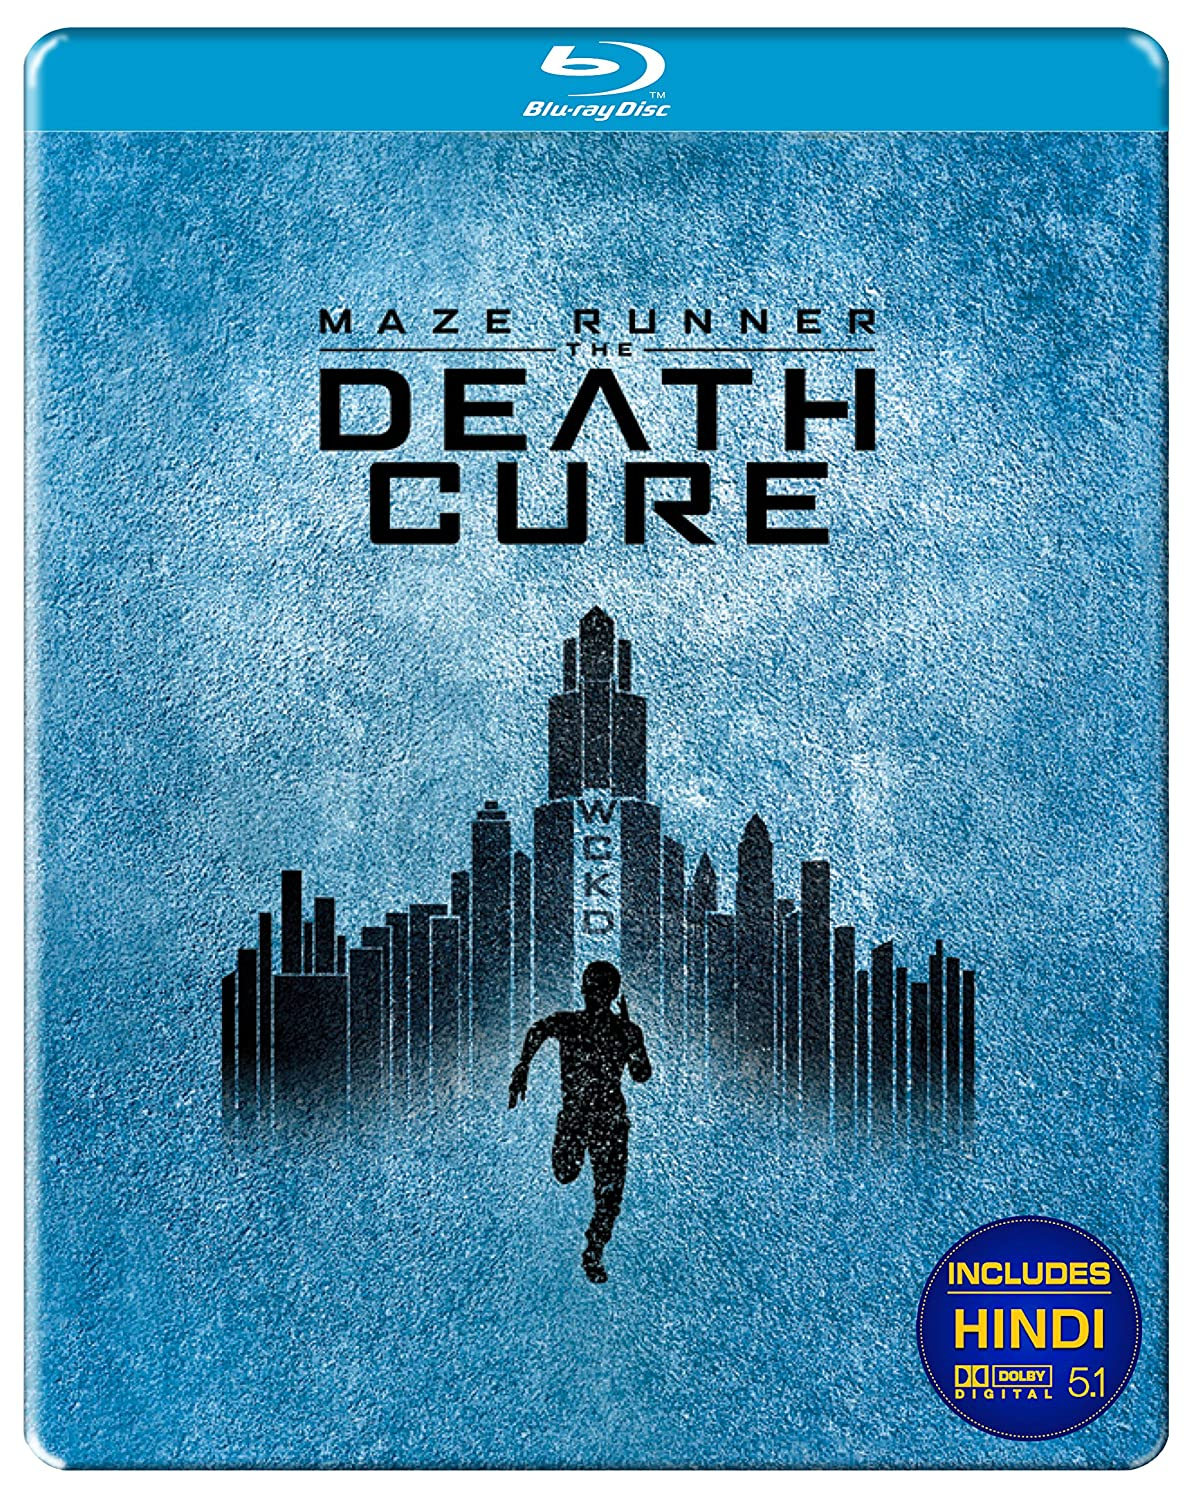 Maze Runner: The Death Cure Disc STEELBOOK Single Max 60% It is very popular OFF Blu-ray